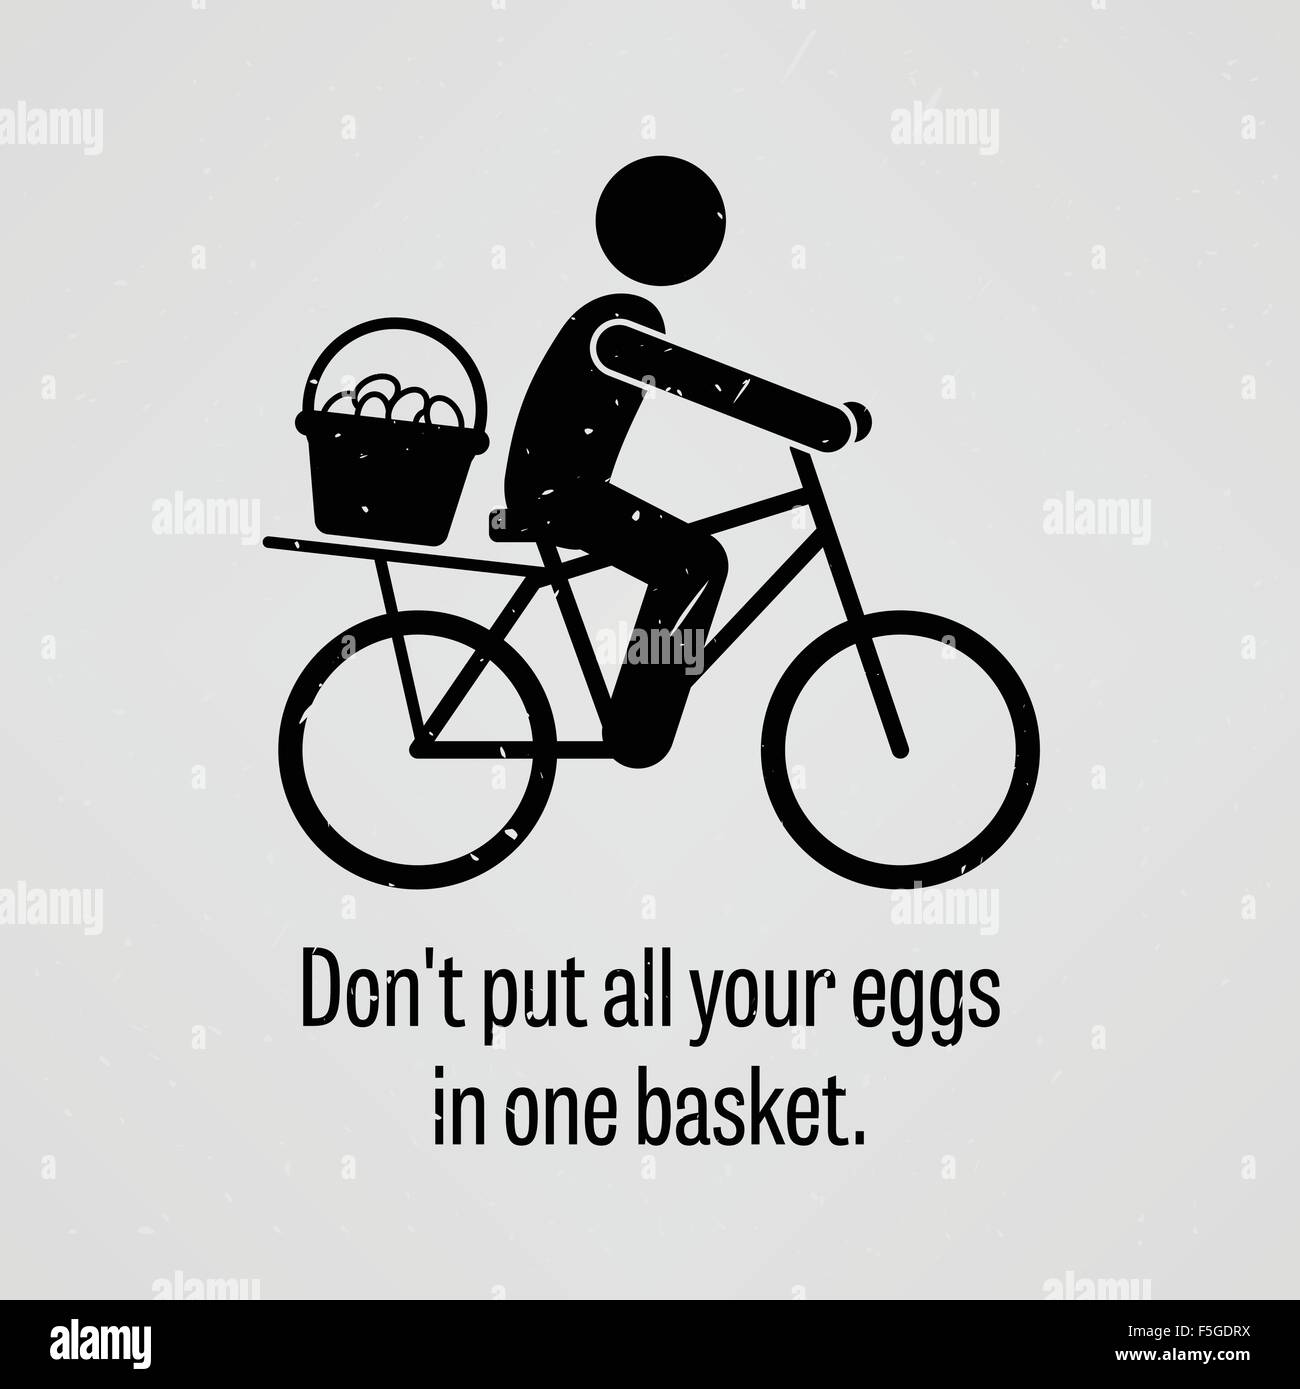 Do not put all your eggs in one basket - Stock Vector